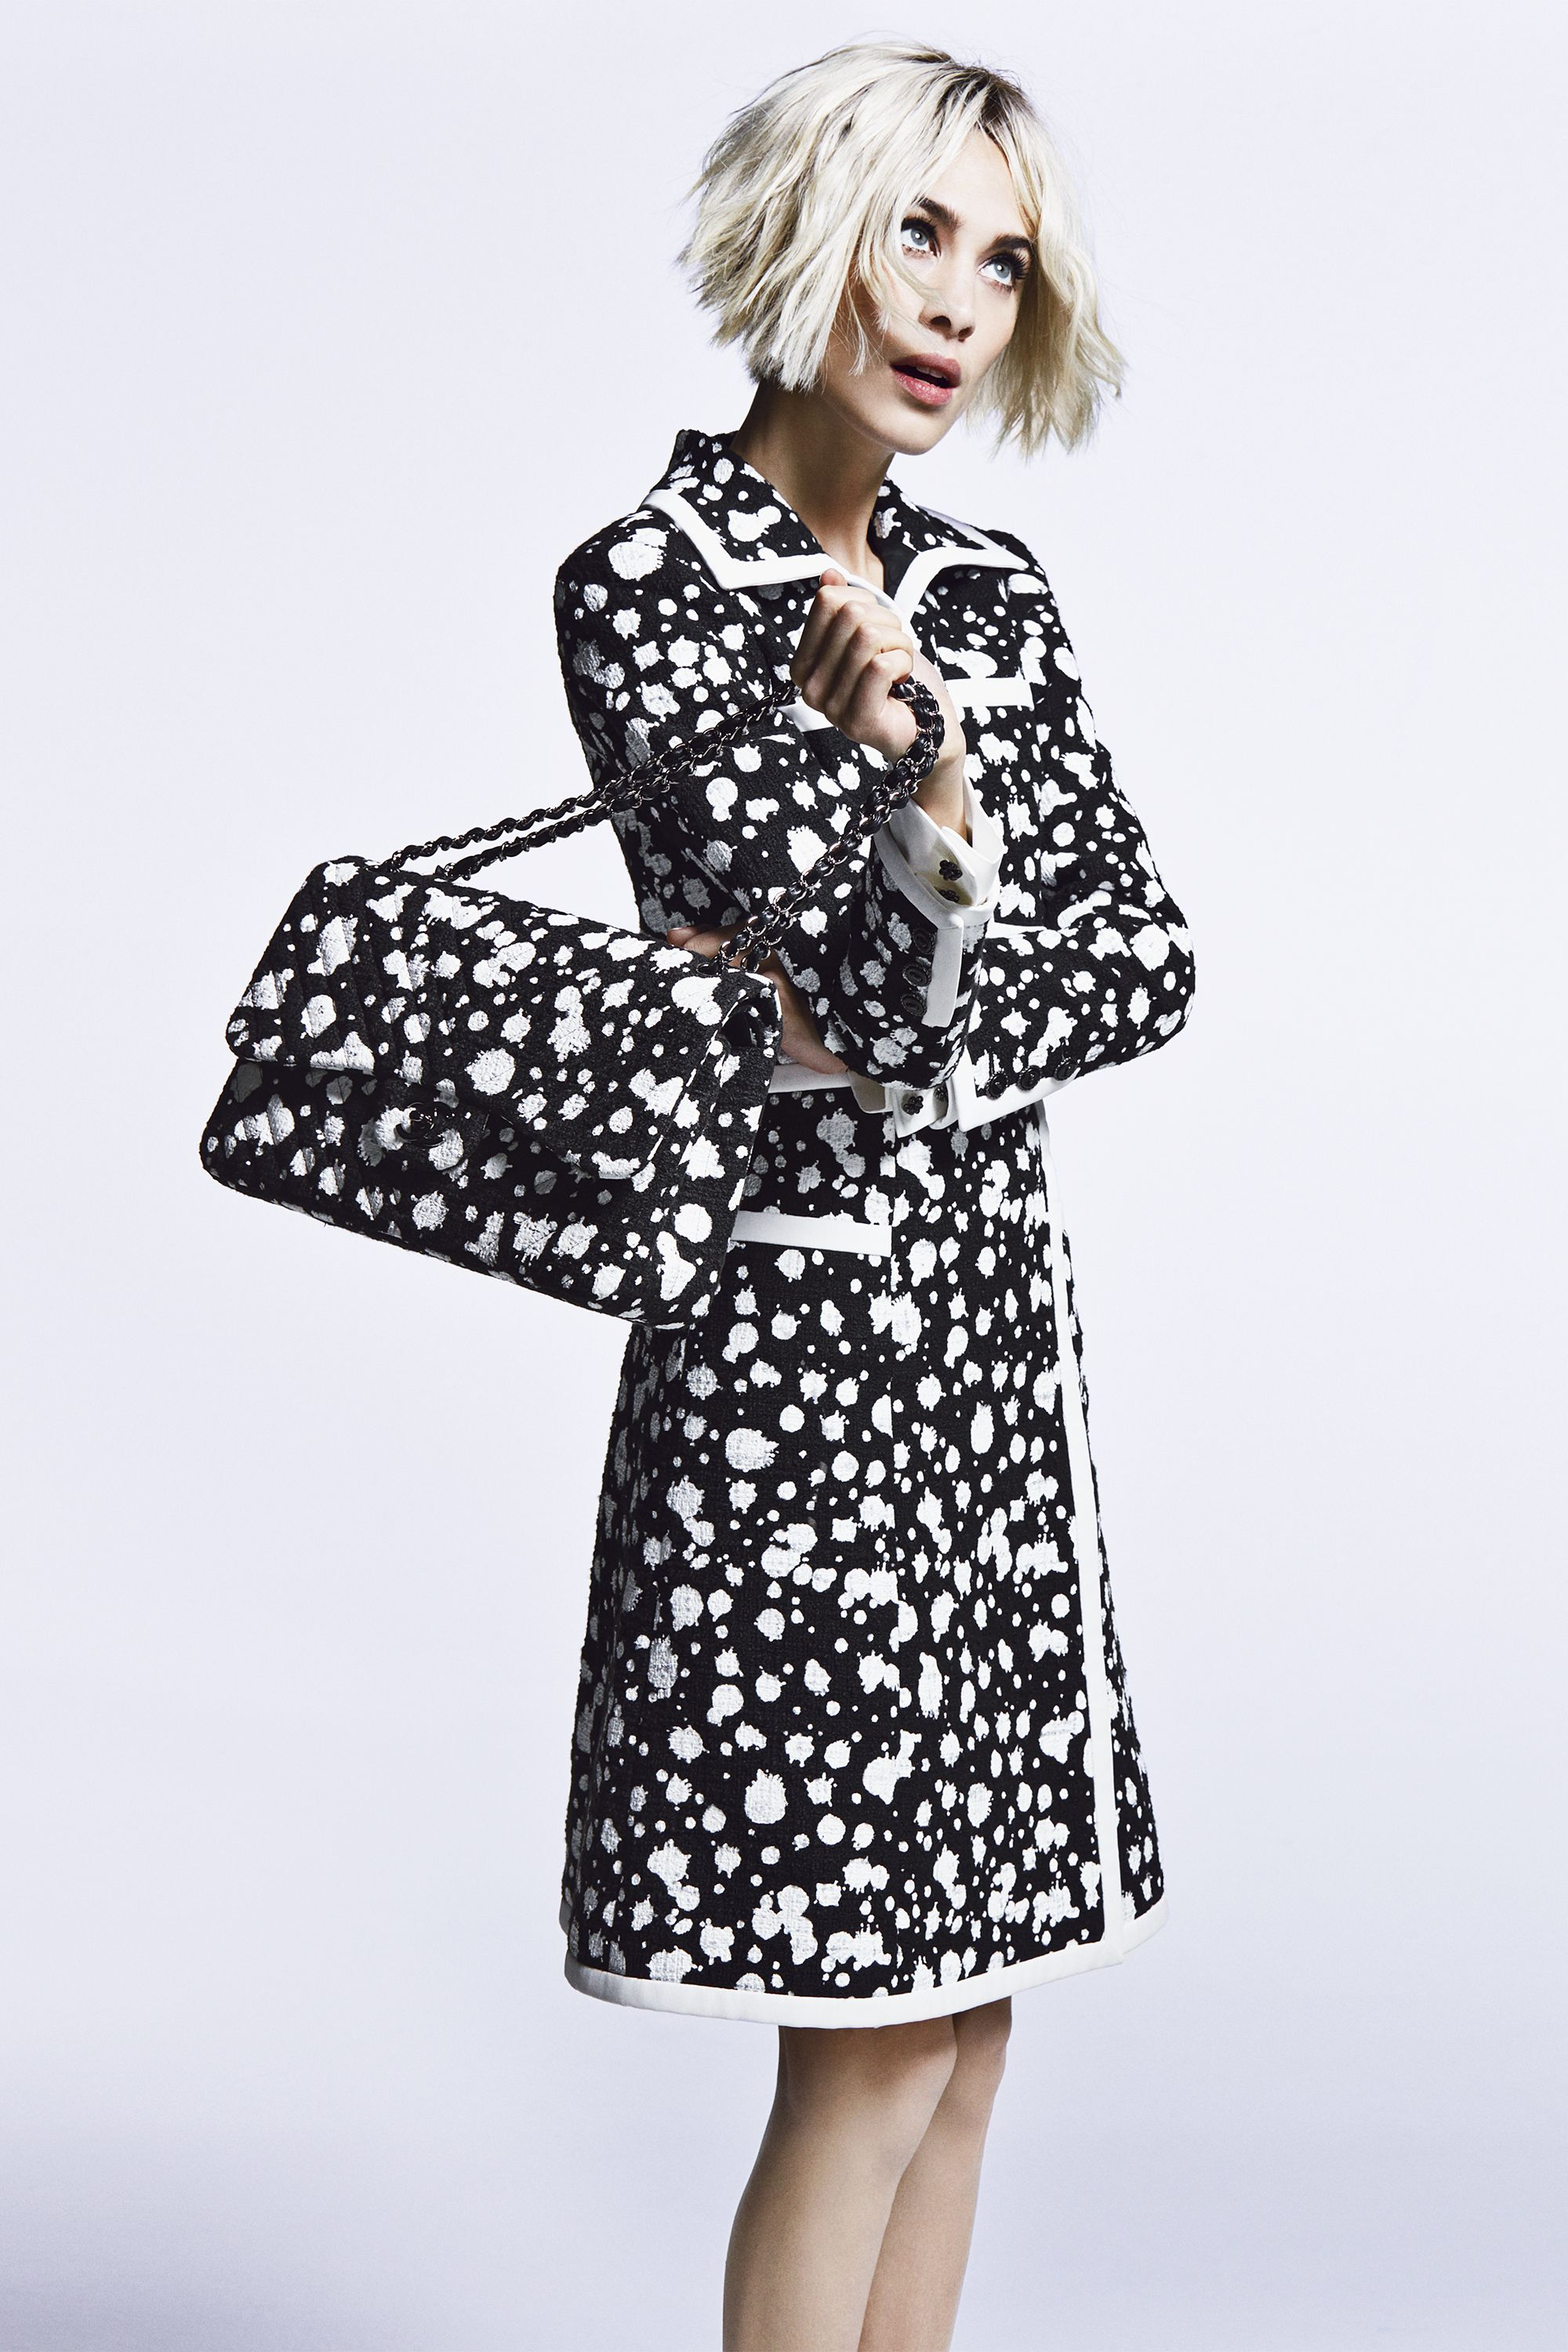 "<strong>Chanel</strong> jacket, $6,200,&nbsp&#x3B;and skirt, $2,500,&nbsp&#x3B;<a href=""http://shop.nordstrom.com/"">Nordstrom</a>, 800-695-8000&#x3B; <strong>Chanel</strong> bag, $4,200,&nbsp&#x3B;800-550-0005."